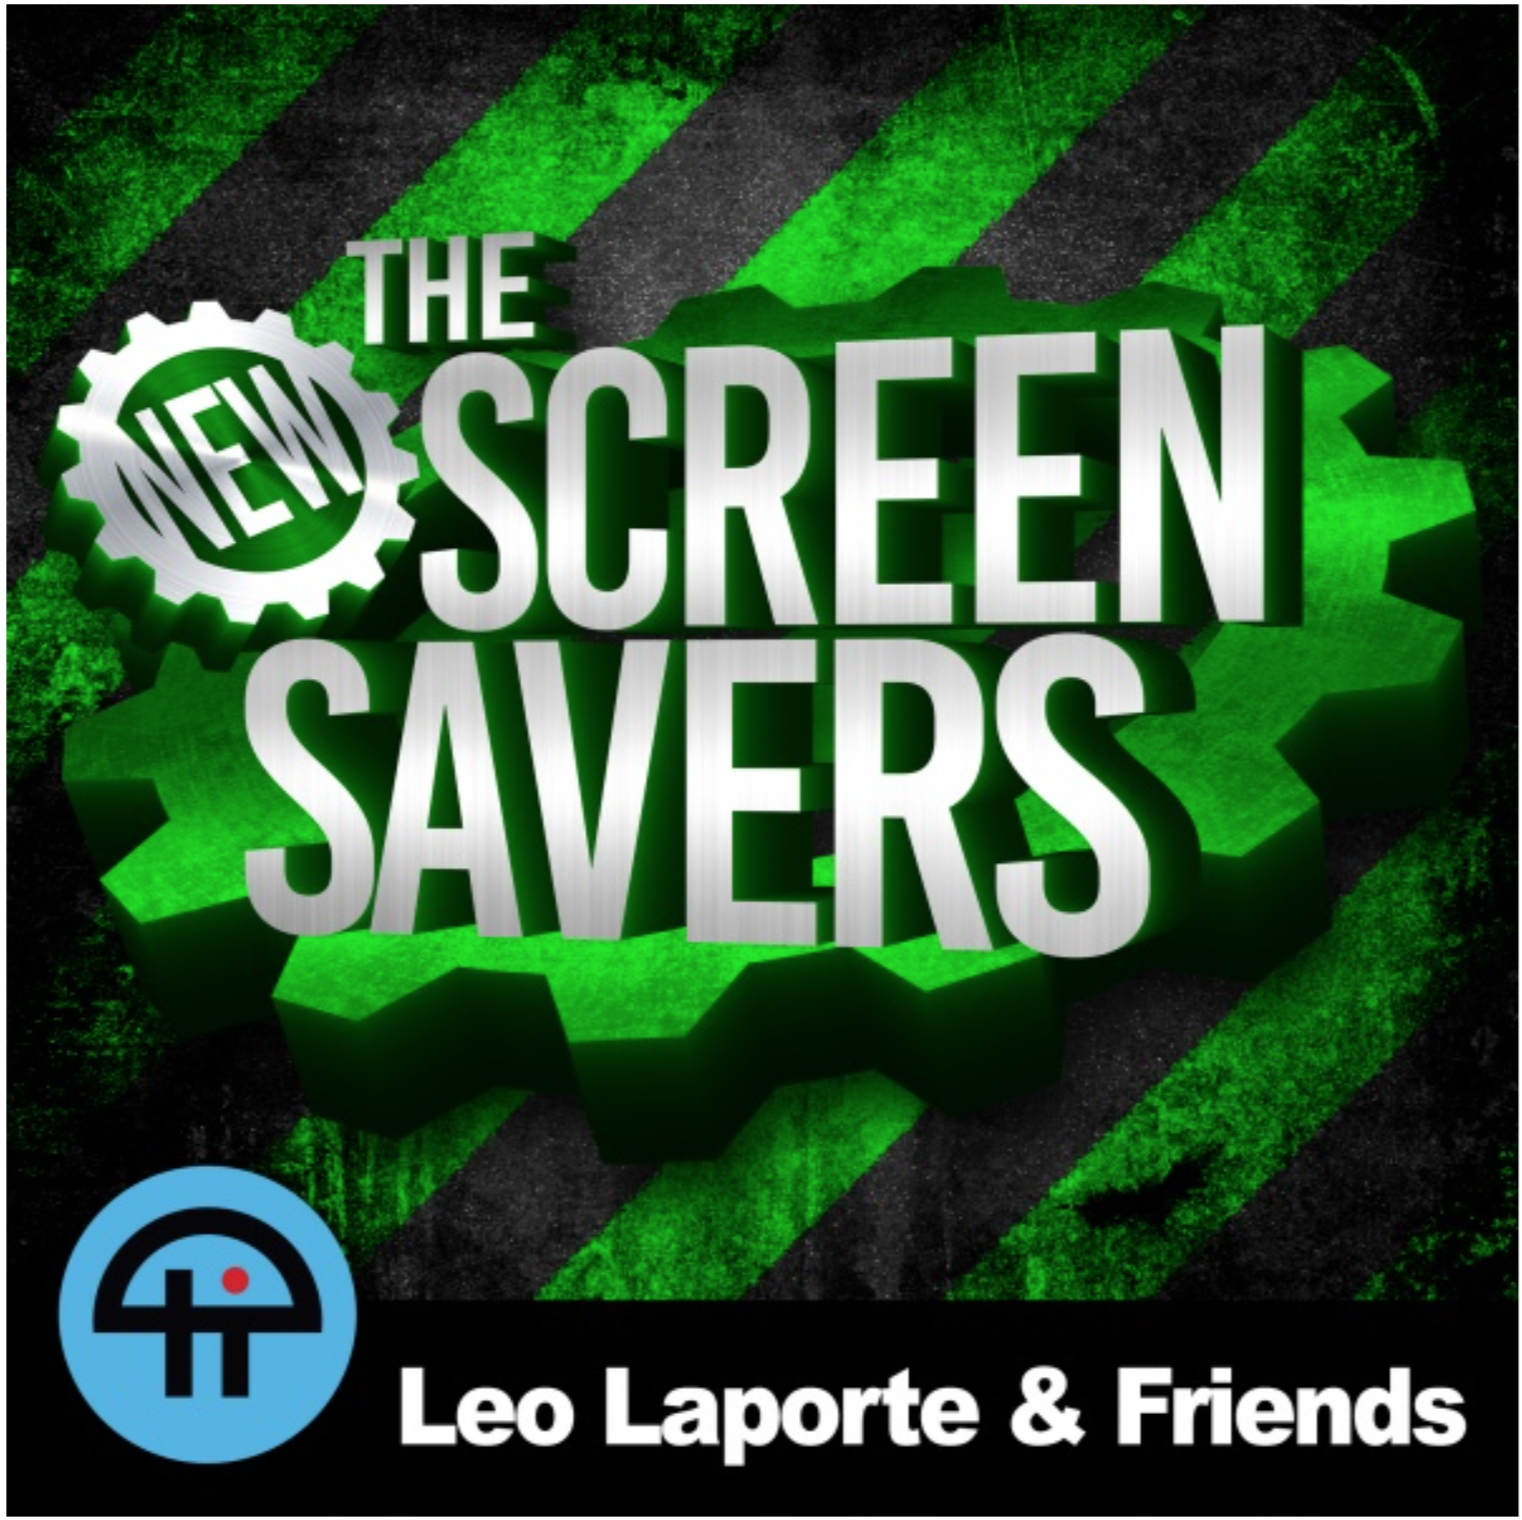 THE NEW SCREEN SAVERS - Hosted by Leo Laporte